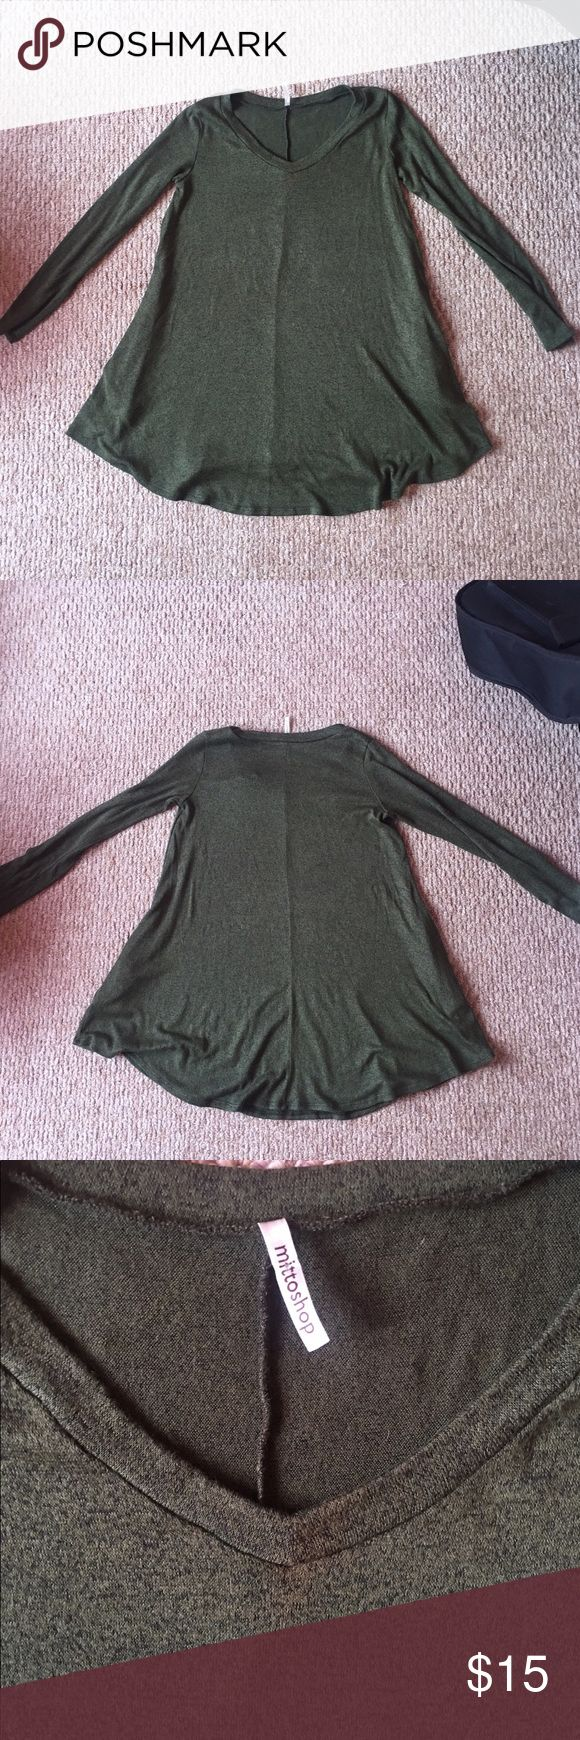 """Long Sleeve Green Sweater Dress ***NOT H&M ONLY PUT THAT FOR EXPOSURE!!*** bought this at Val's Boutique in Knoxville, TN! LOVED IT! SOOO COMFY AND STRETCHY! Has pockets!❤️ women's size Large with sweater material. Brand says """"Mittoshop"""". Worn about 4 times & has small very unnoticeable makeup stain in the front where the neckline is as shown in 3rd picture. Great condition! Accepting all reasonable offers! H&M Dresses Long Sleeve"""